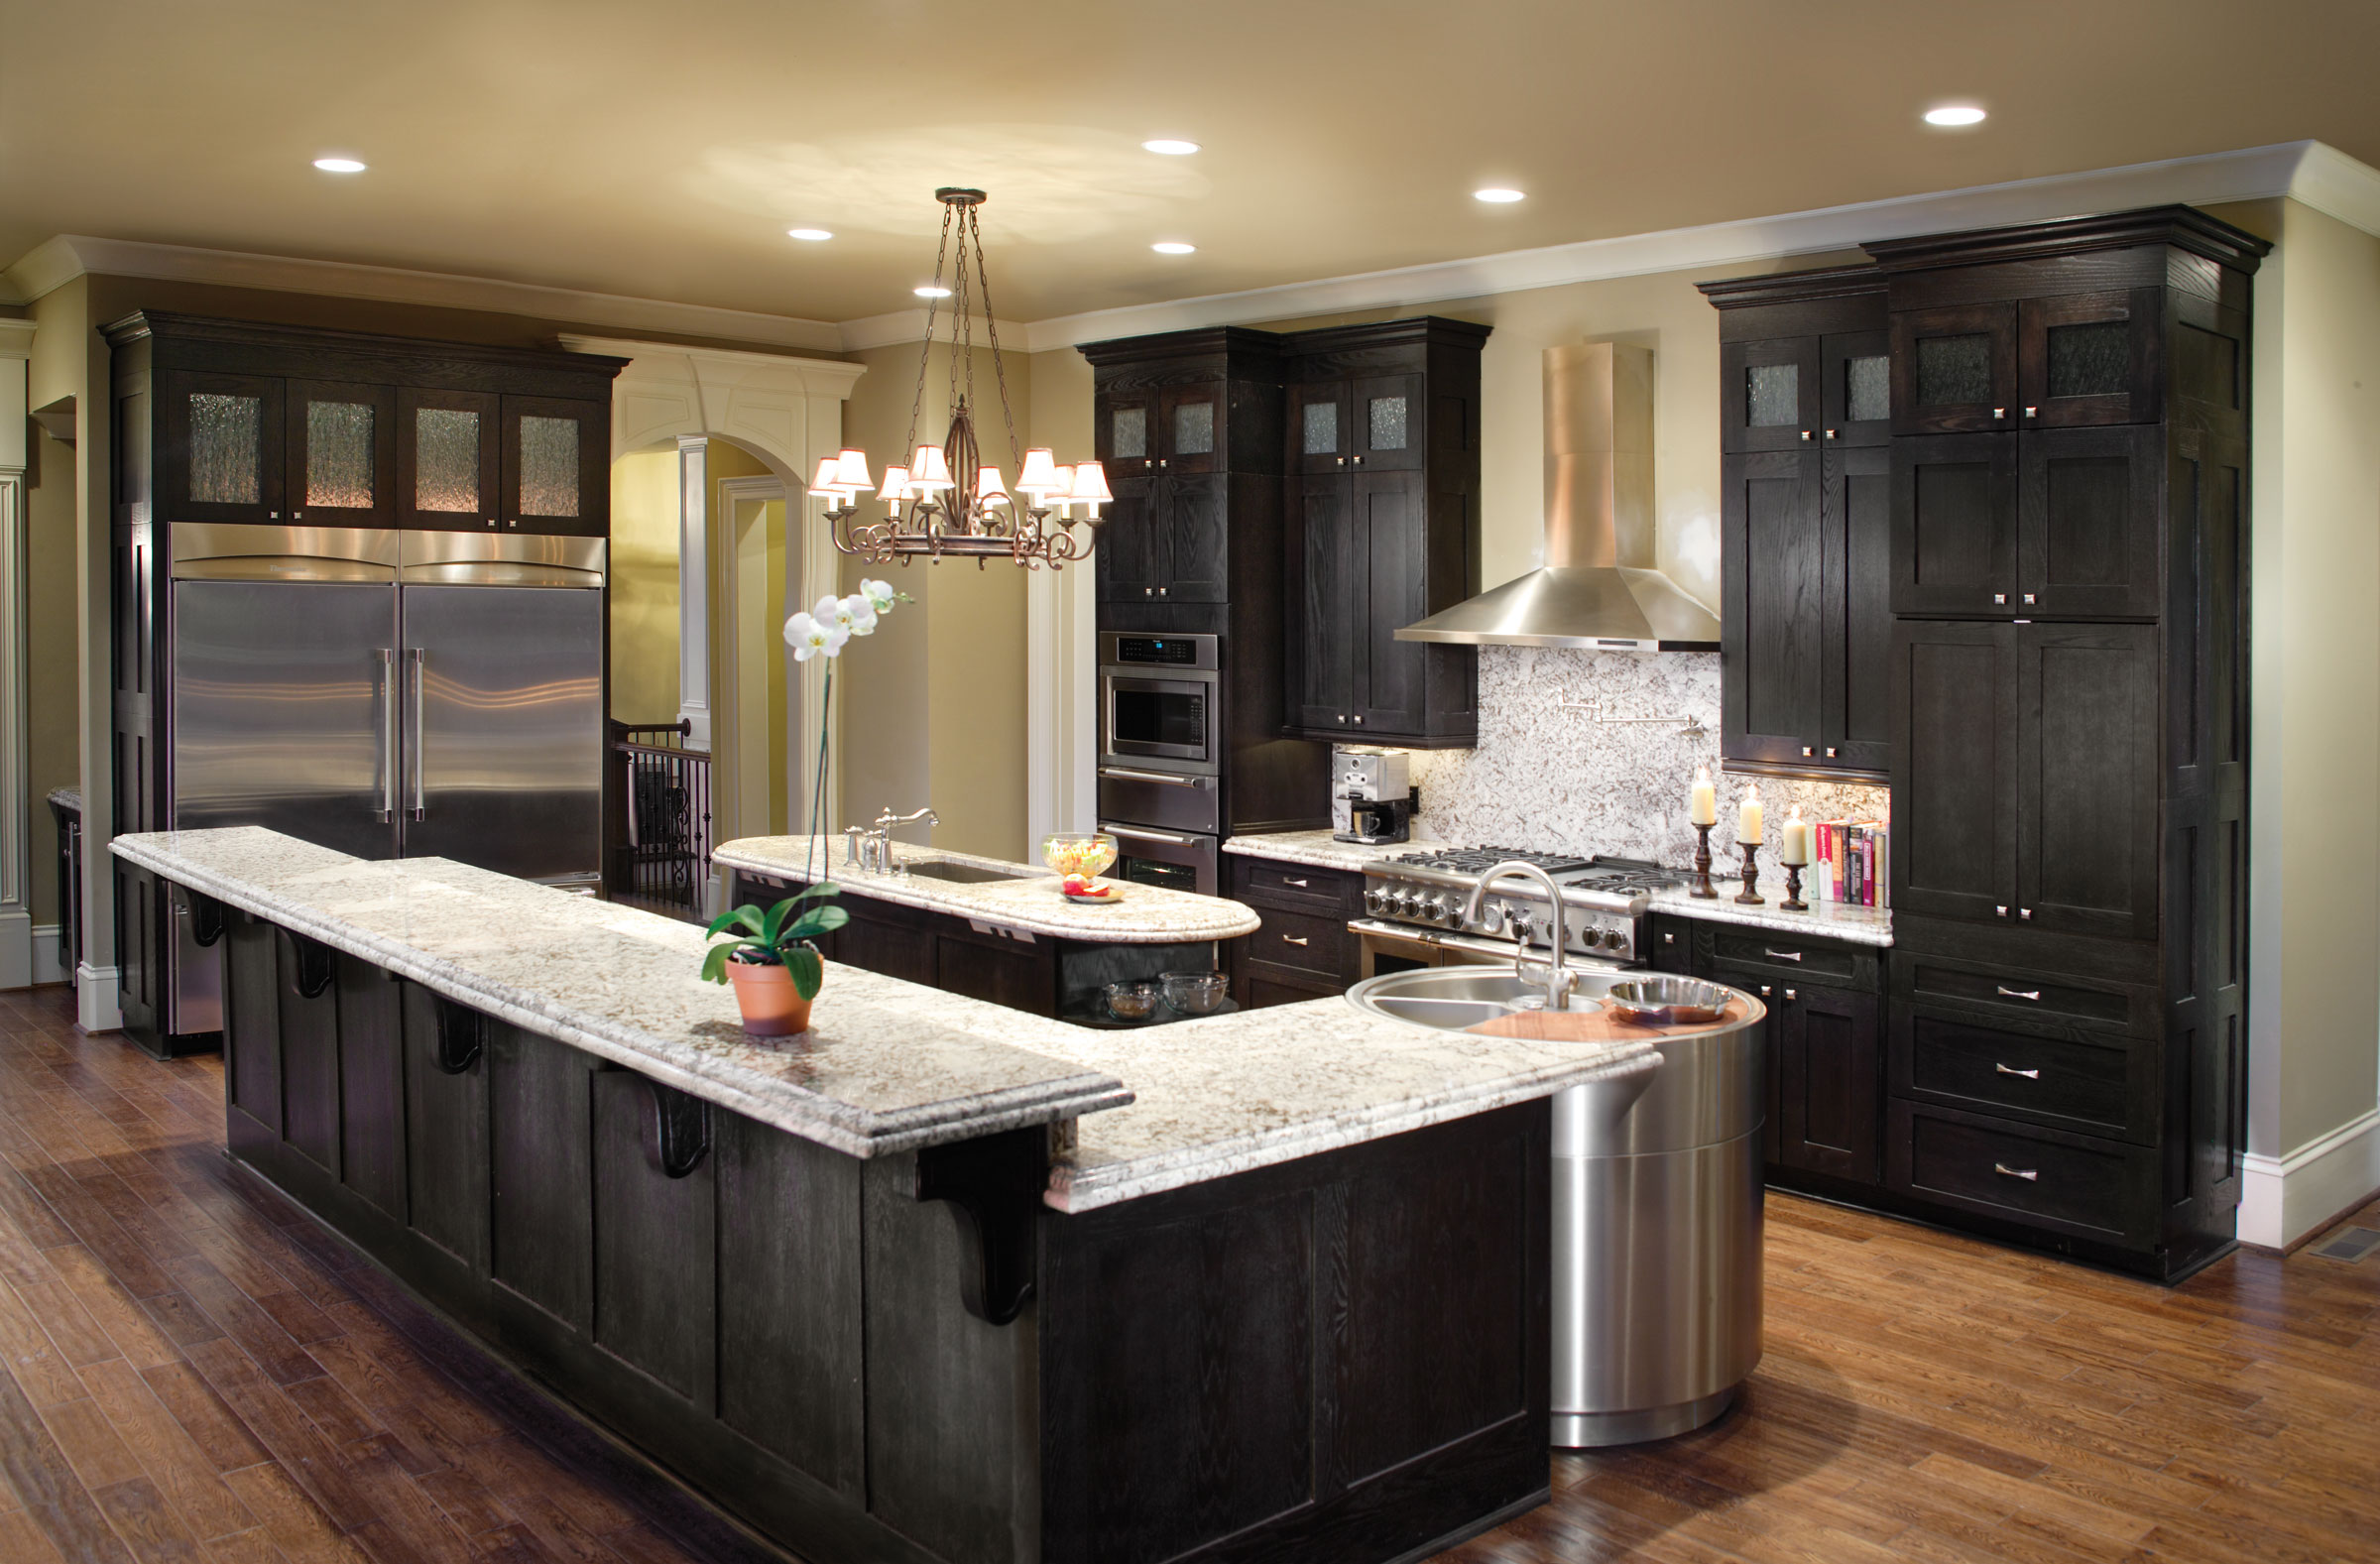 Black Stainless With Walnut Cabinets Kitchens